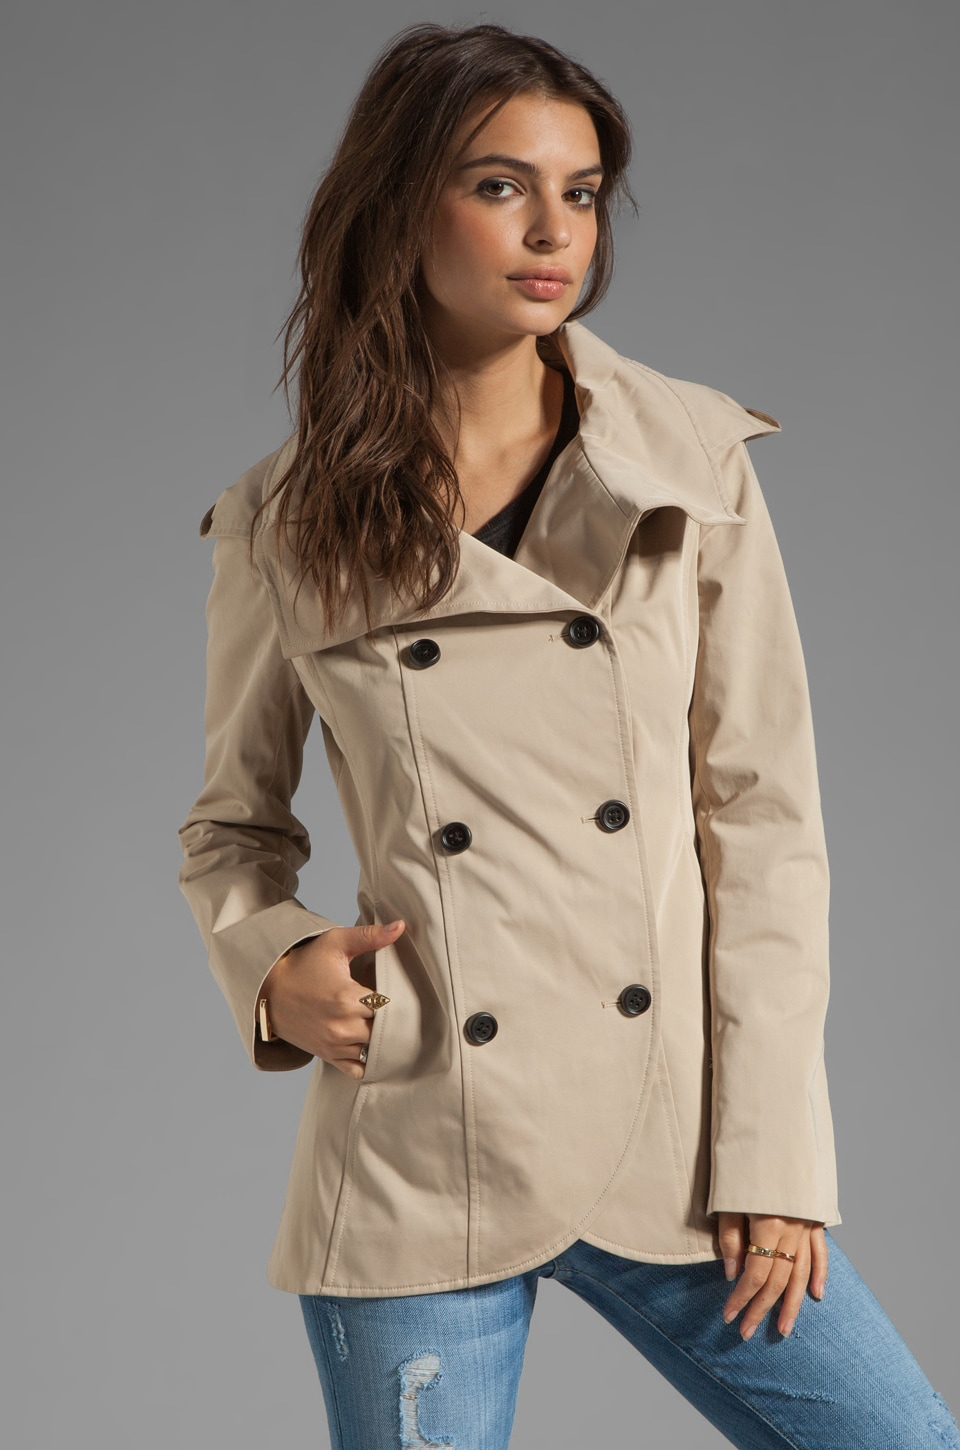 Soia & Kyo Benetta Trench Jacket in Sand